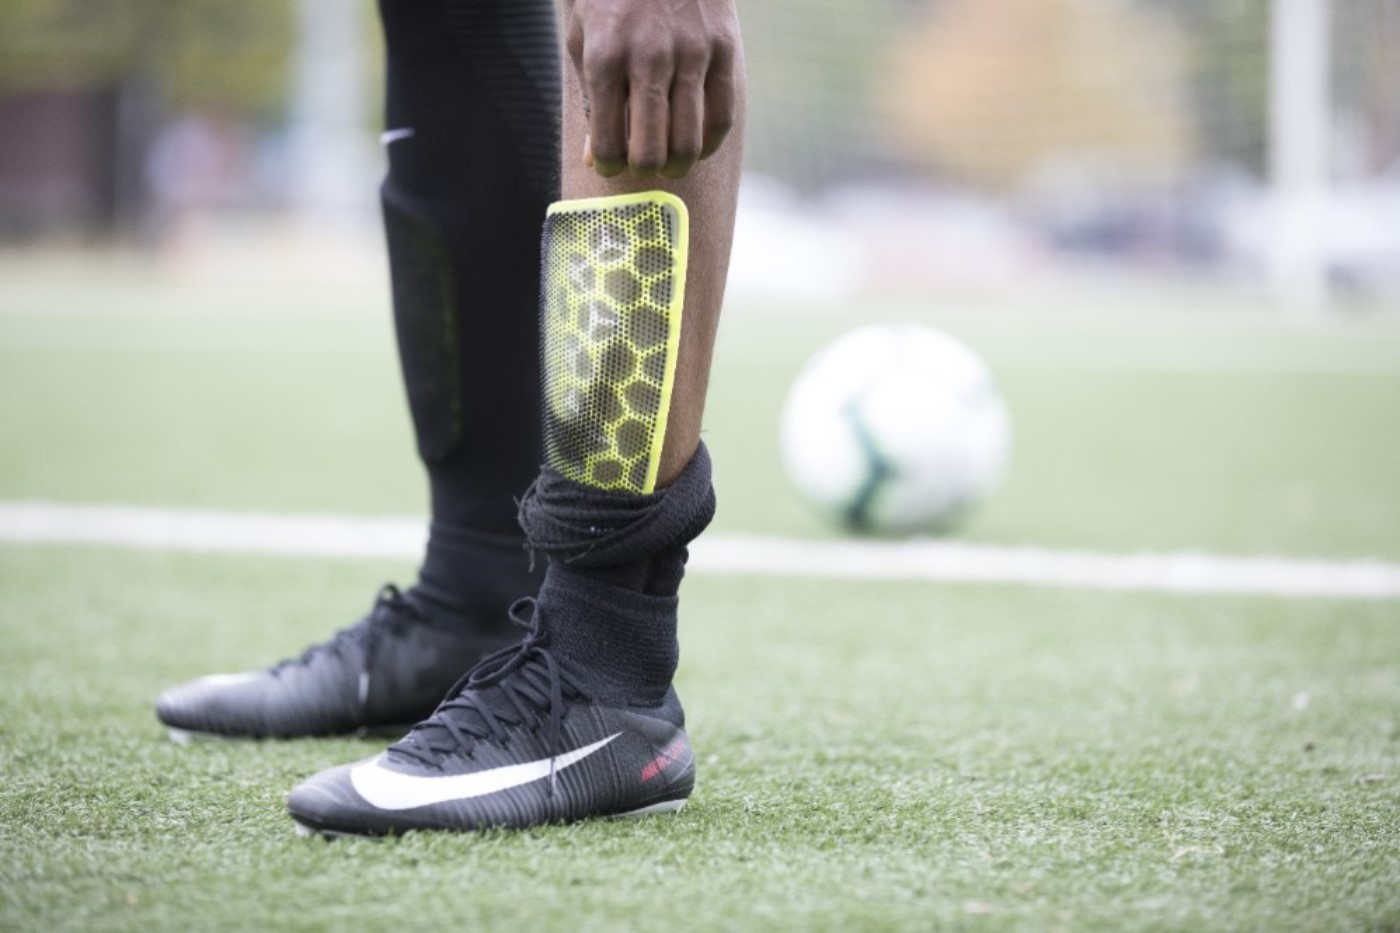 d7a74a7826c 10 Best Shin Guards Reviewed   Rated in 2019